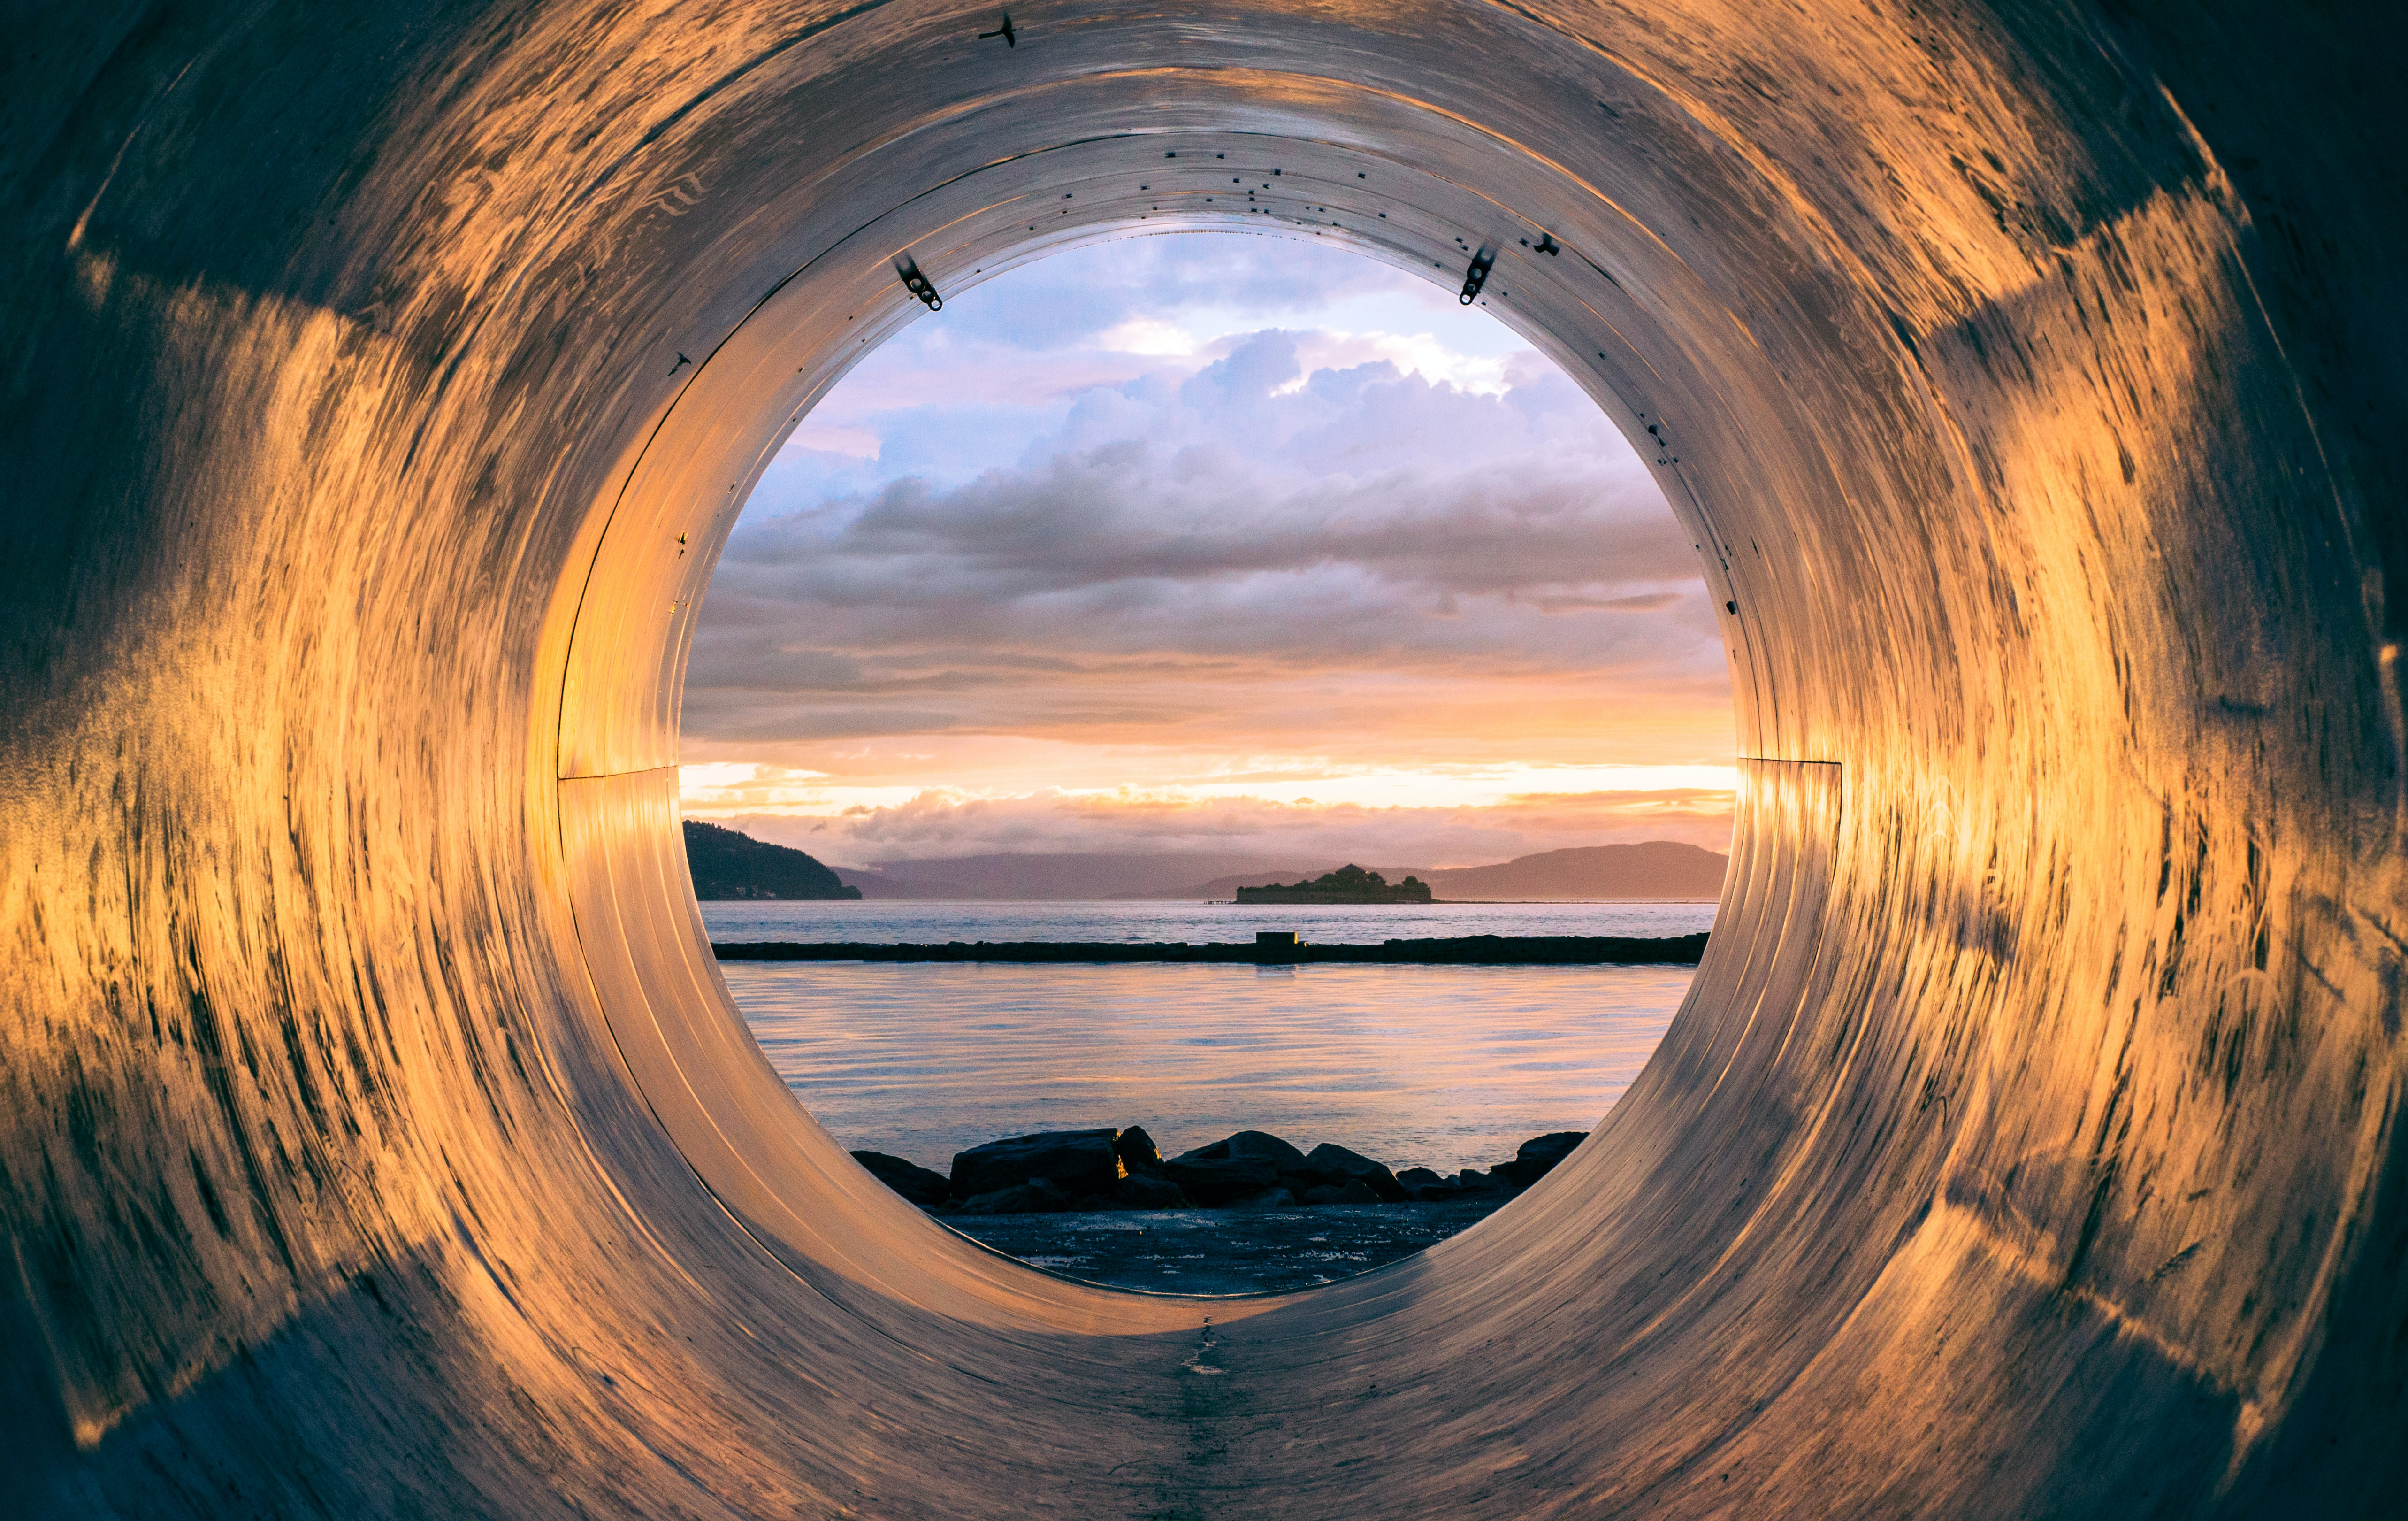 Sunset over the sea seen from the inside of a large pipe